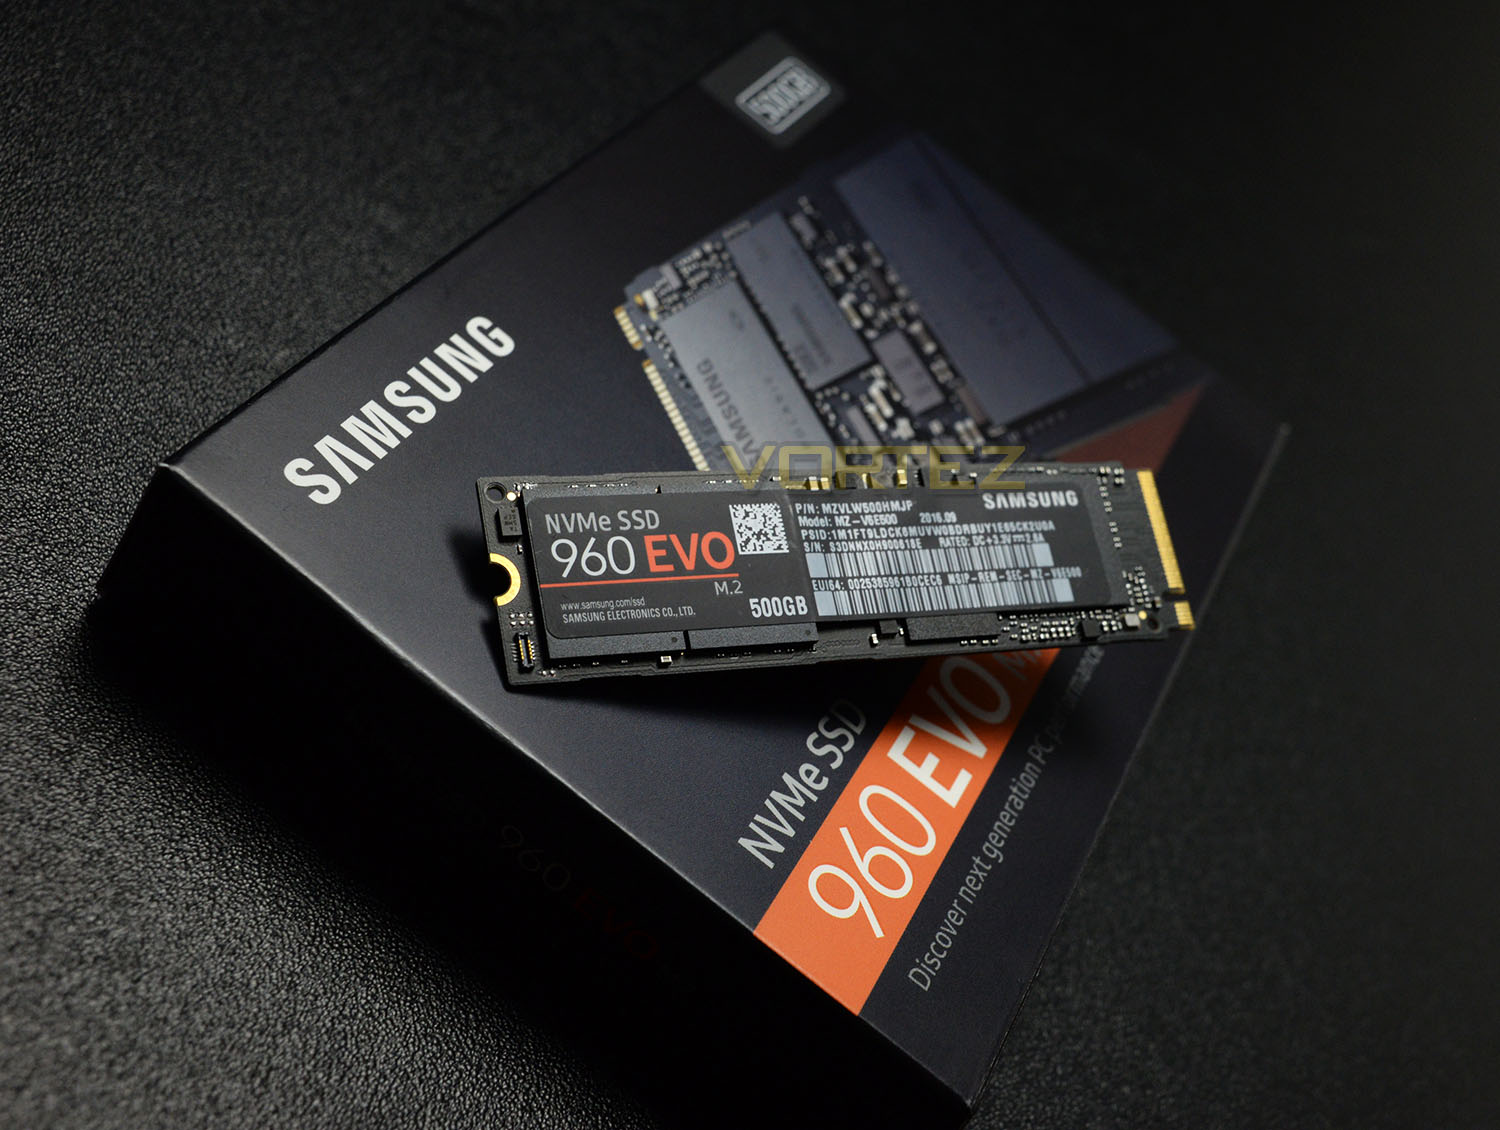 Samsung 960 Evo Review Introduction Ssd Nvme M2 250gb On Their Pro The New